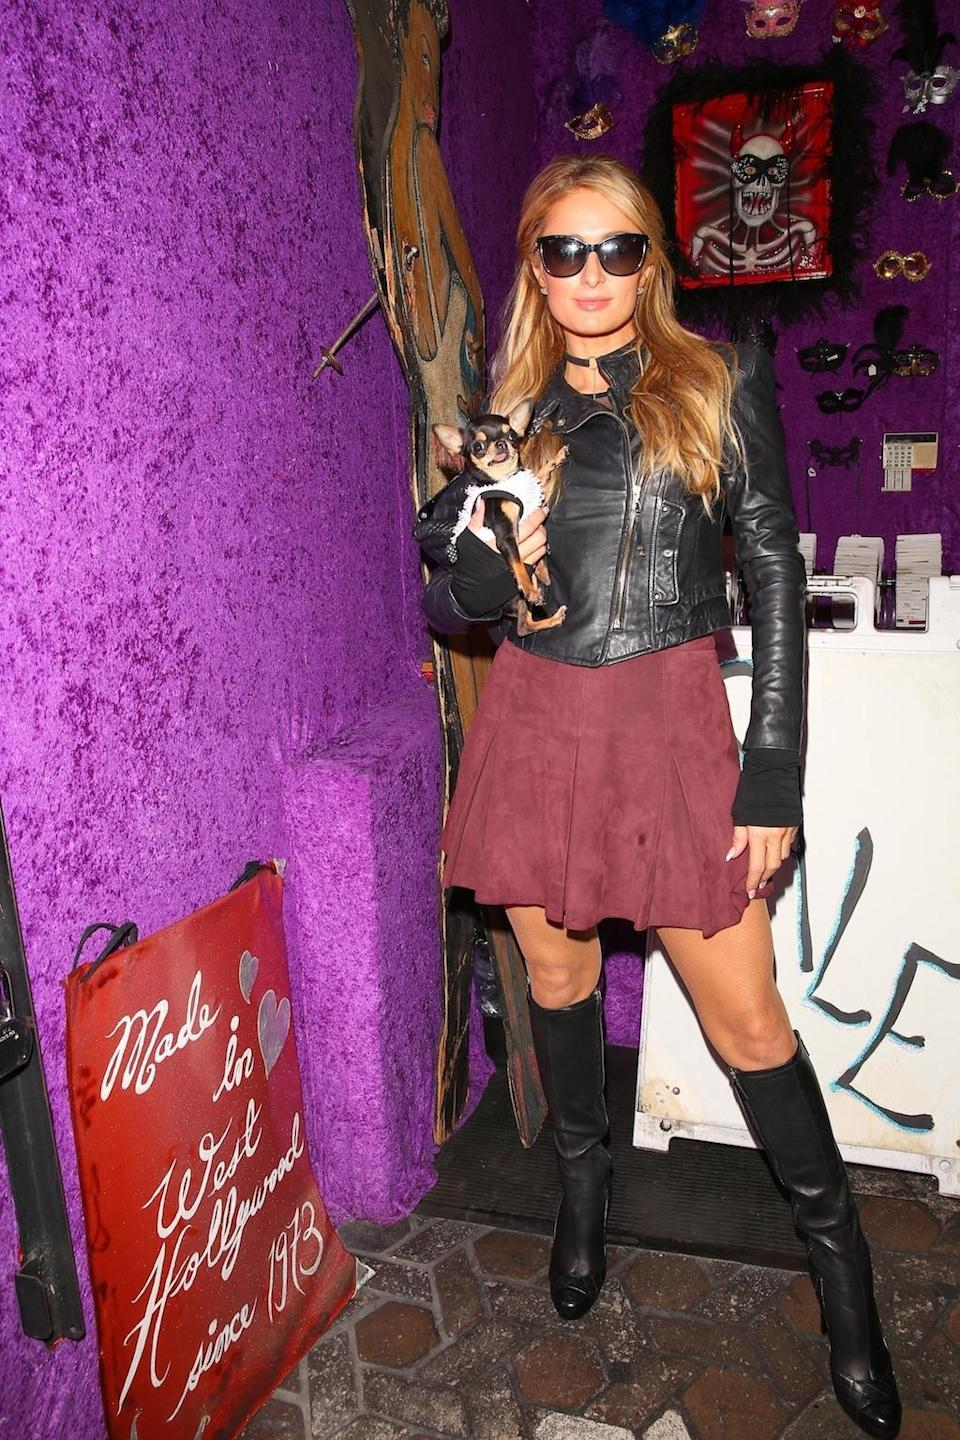 """<p>There are a few things that you can count on seeing in Hollywood every Halloween. One is Heidi Klum <a rel=""""nofollow"""" href=""""https://www.yahoo.com/entertainment/halloween-queen-heidi-klum-teases-costume-214054923.html"""" data-ylk=""""slk:prepping her costume;outcm:mb_qualified_link;_E:mb_qualified_link;ct:story;"""" class=""""link rapid-noclick-resp yahoo-link"""">prepping her costume</a> much sooner than the rest of us, and another is Hilton picking out a sexy (fill in the blank here) costume at the store Trashy Lingerie. (Photo: Backgrid) </p>"""